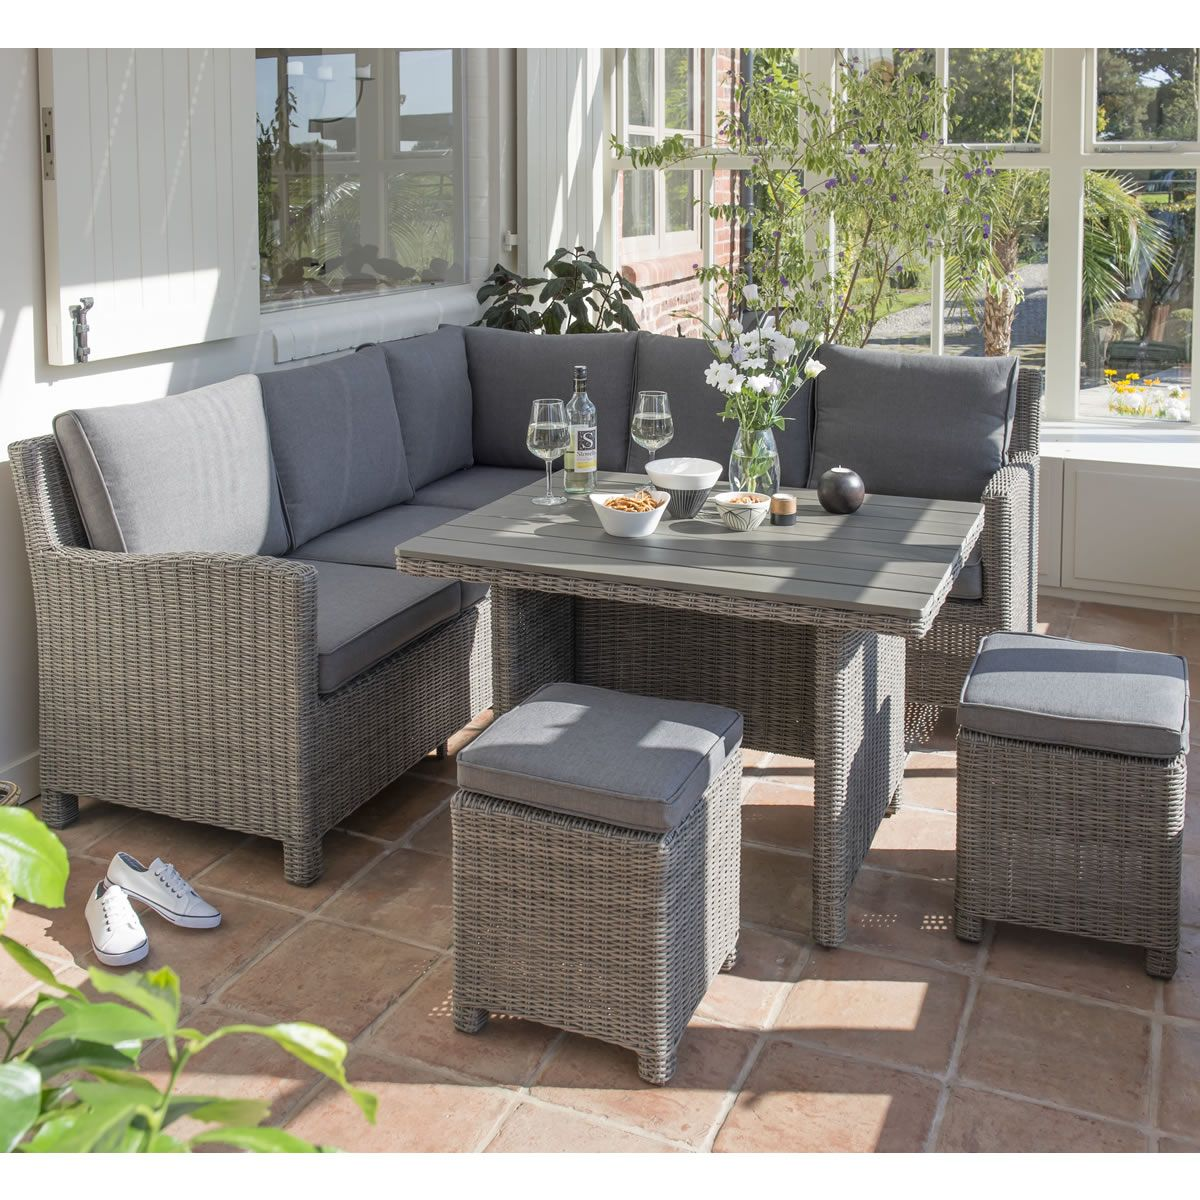 Kettler Palma Mini Corner Set Rattan Slat Top Table 0193335 2100c Used Outdoor Furniture Rattan Garden Furniture Garden Furniture Sets - Kettler Palma Sessel